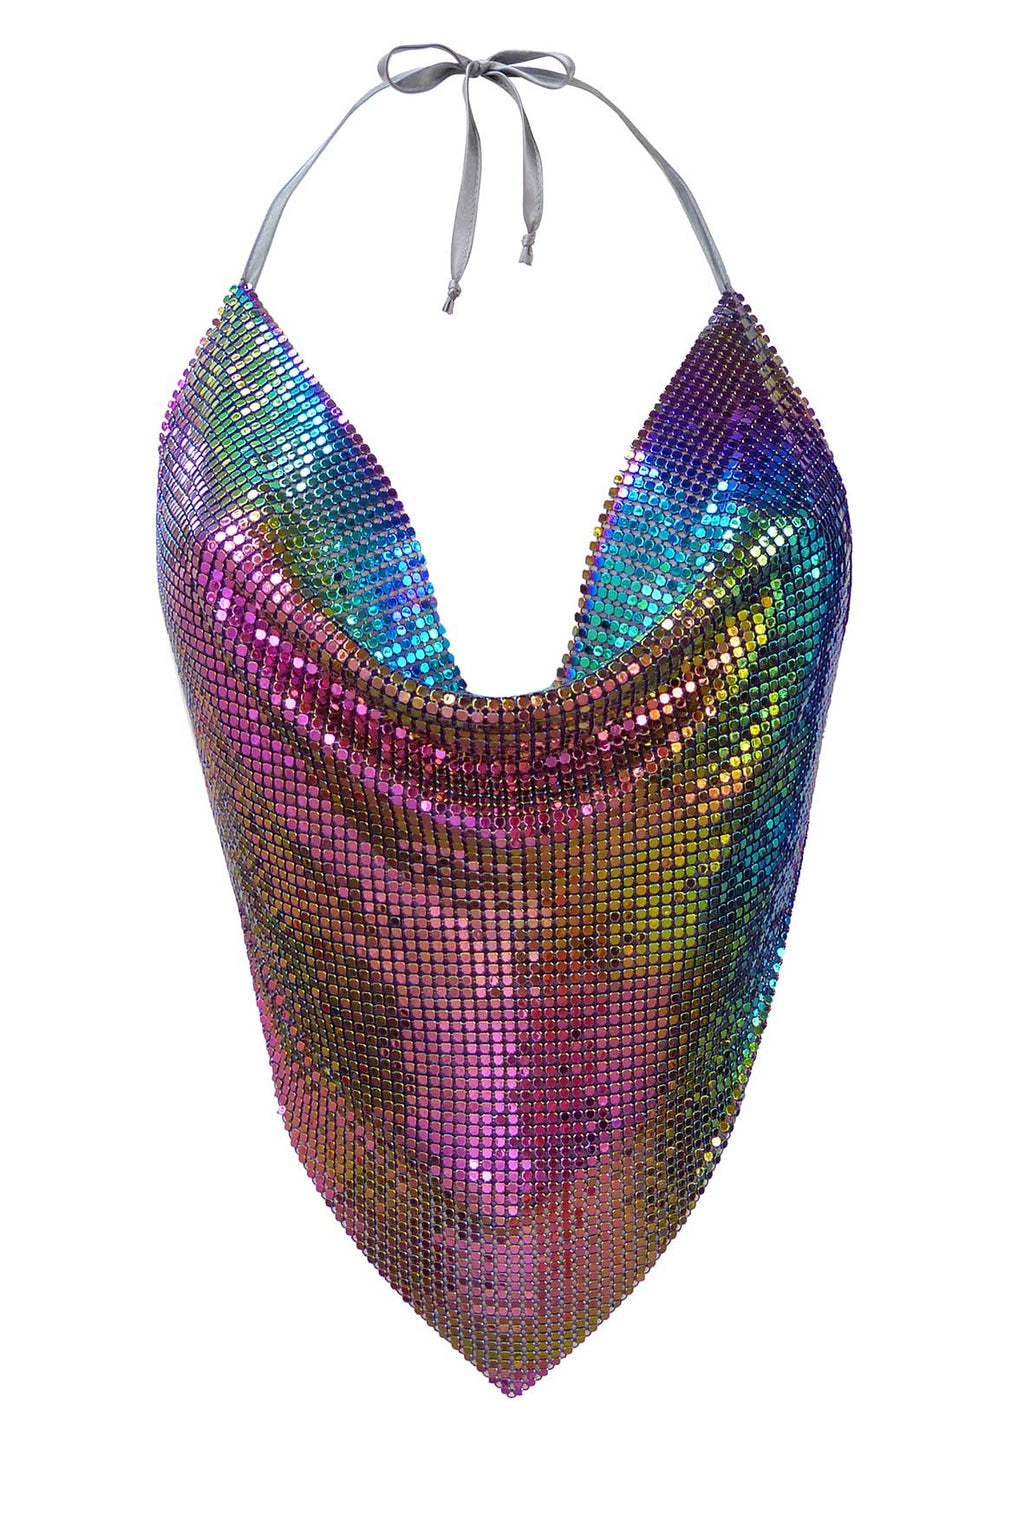 Iridescent Backless Chainmail Top - Annie's Ibiza